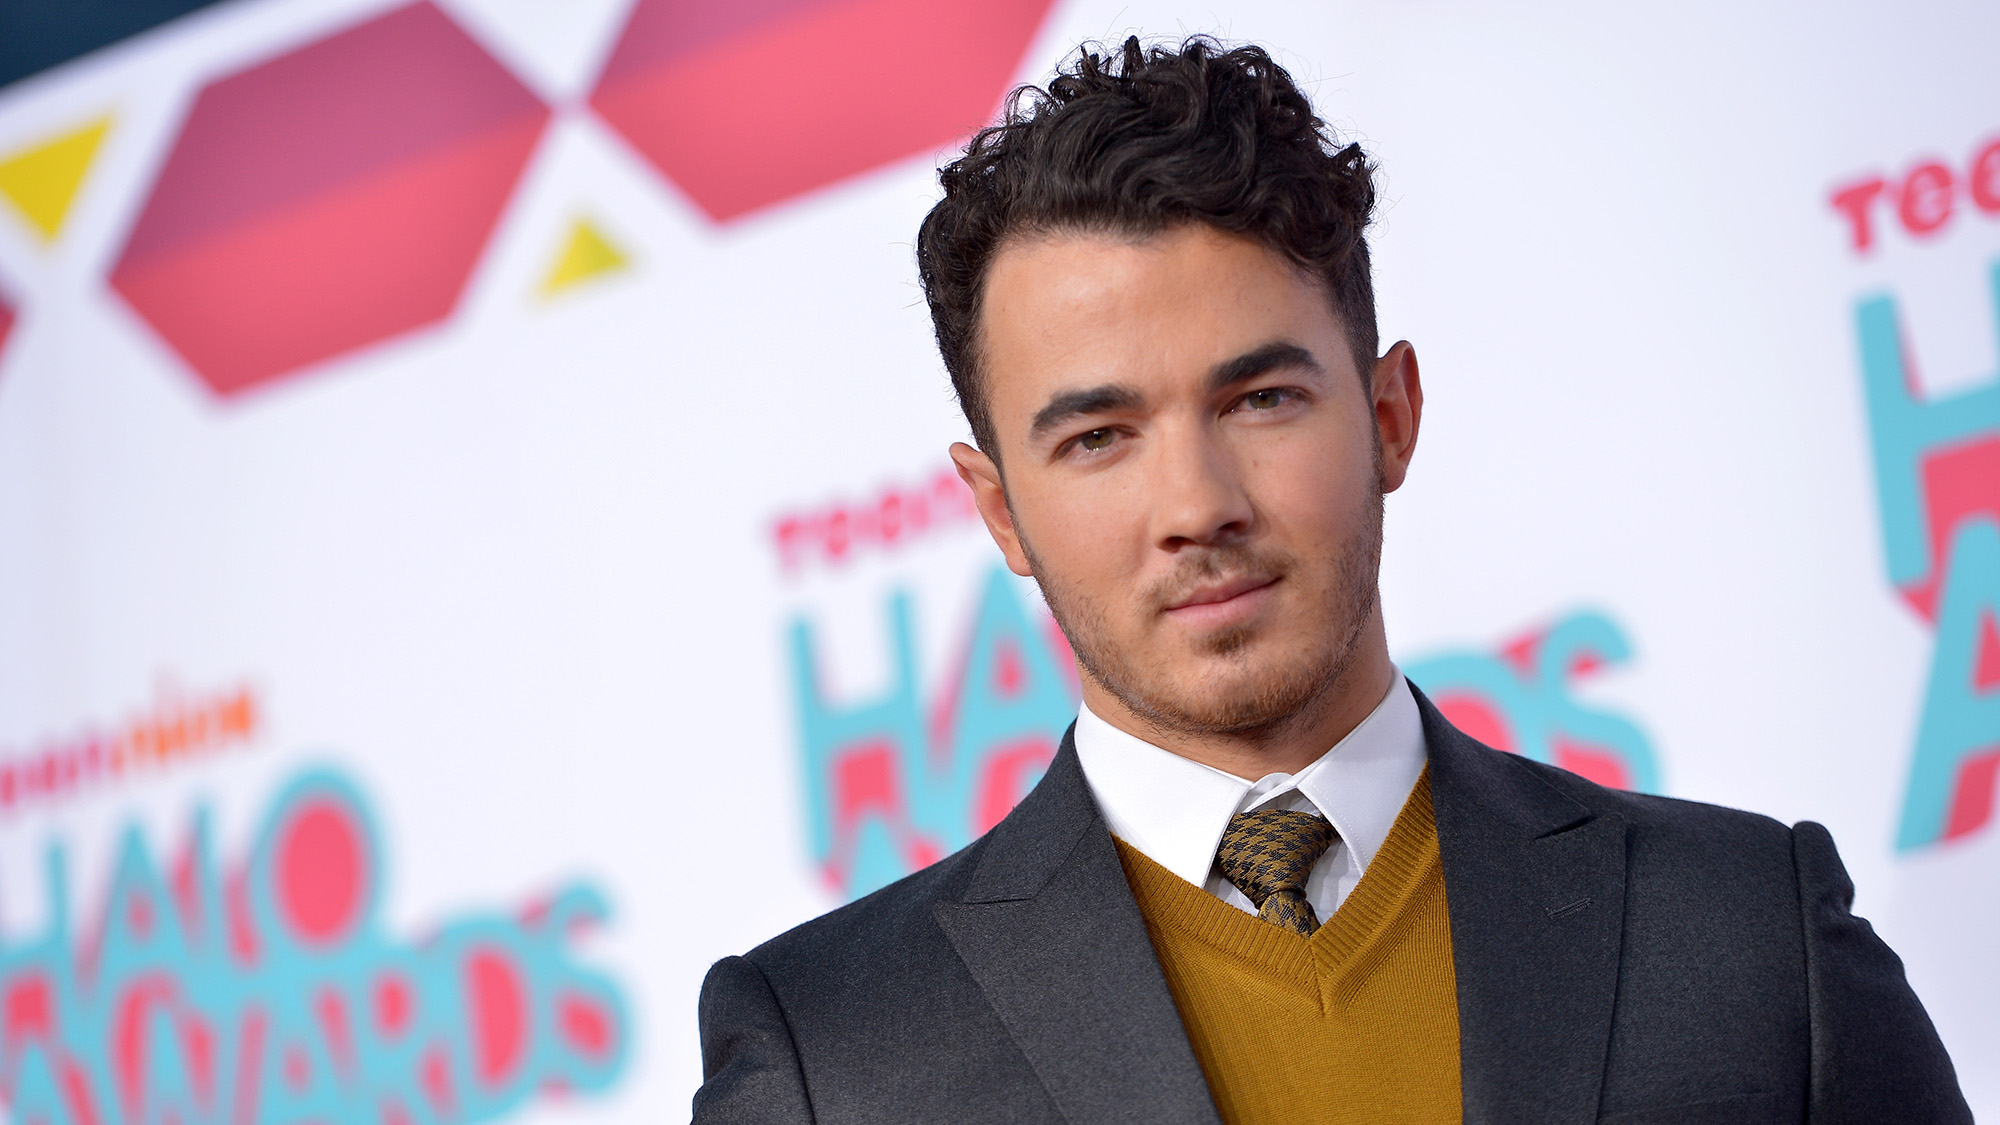 Kevin Jonas of the Jonas Brothers Just Testified in the FIFA Trial